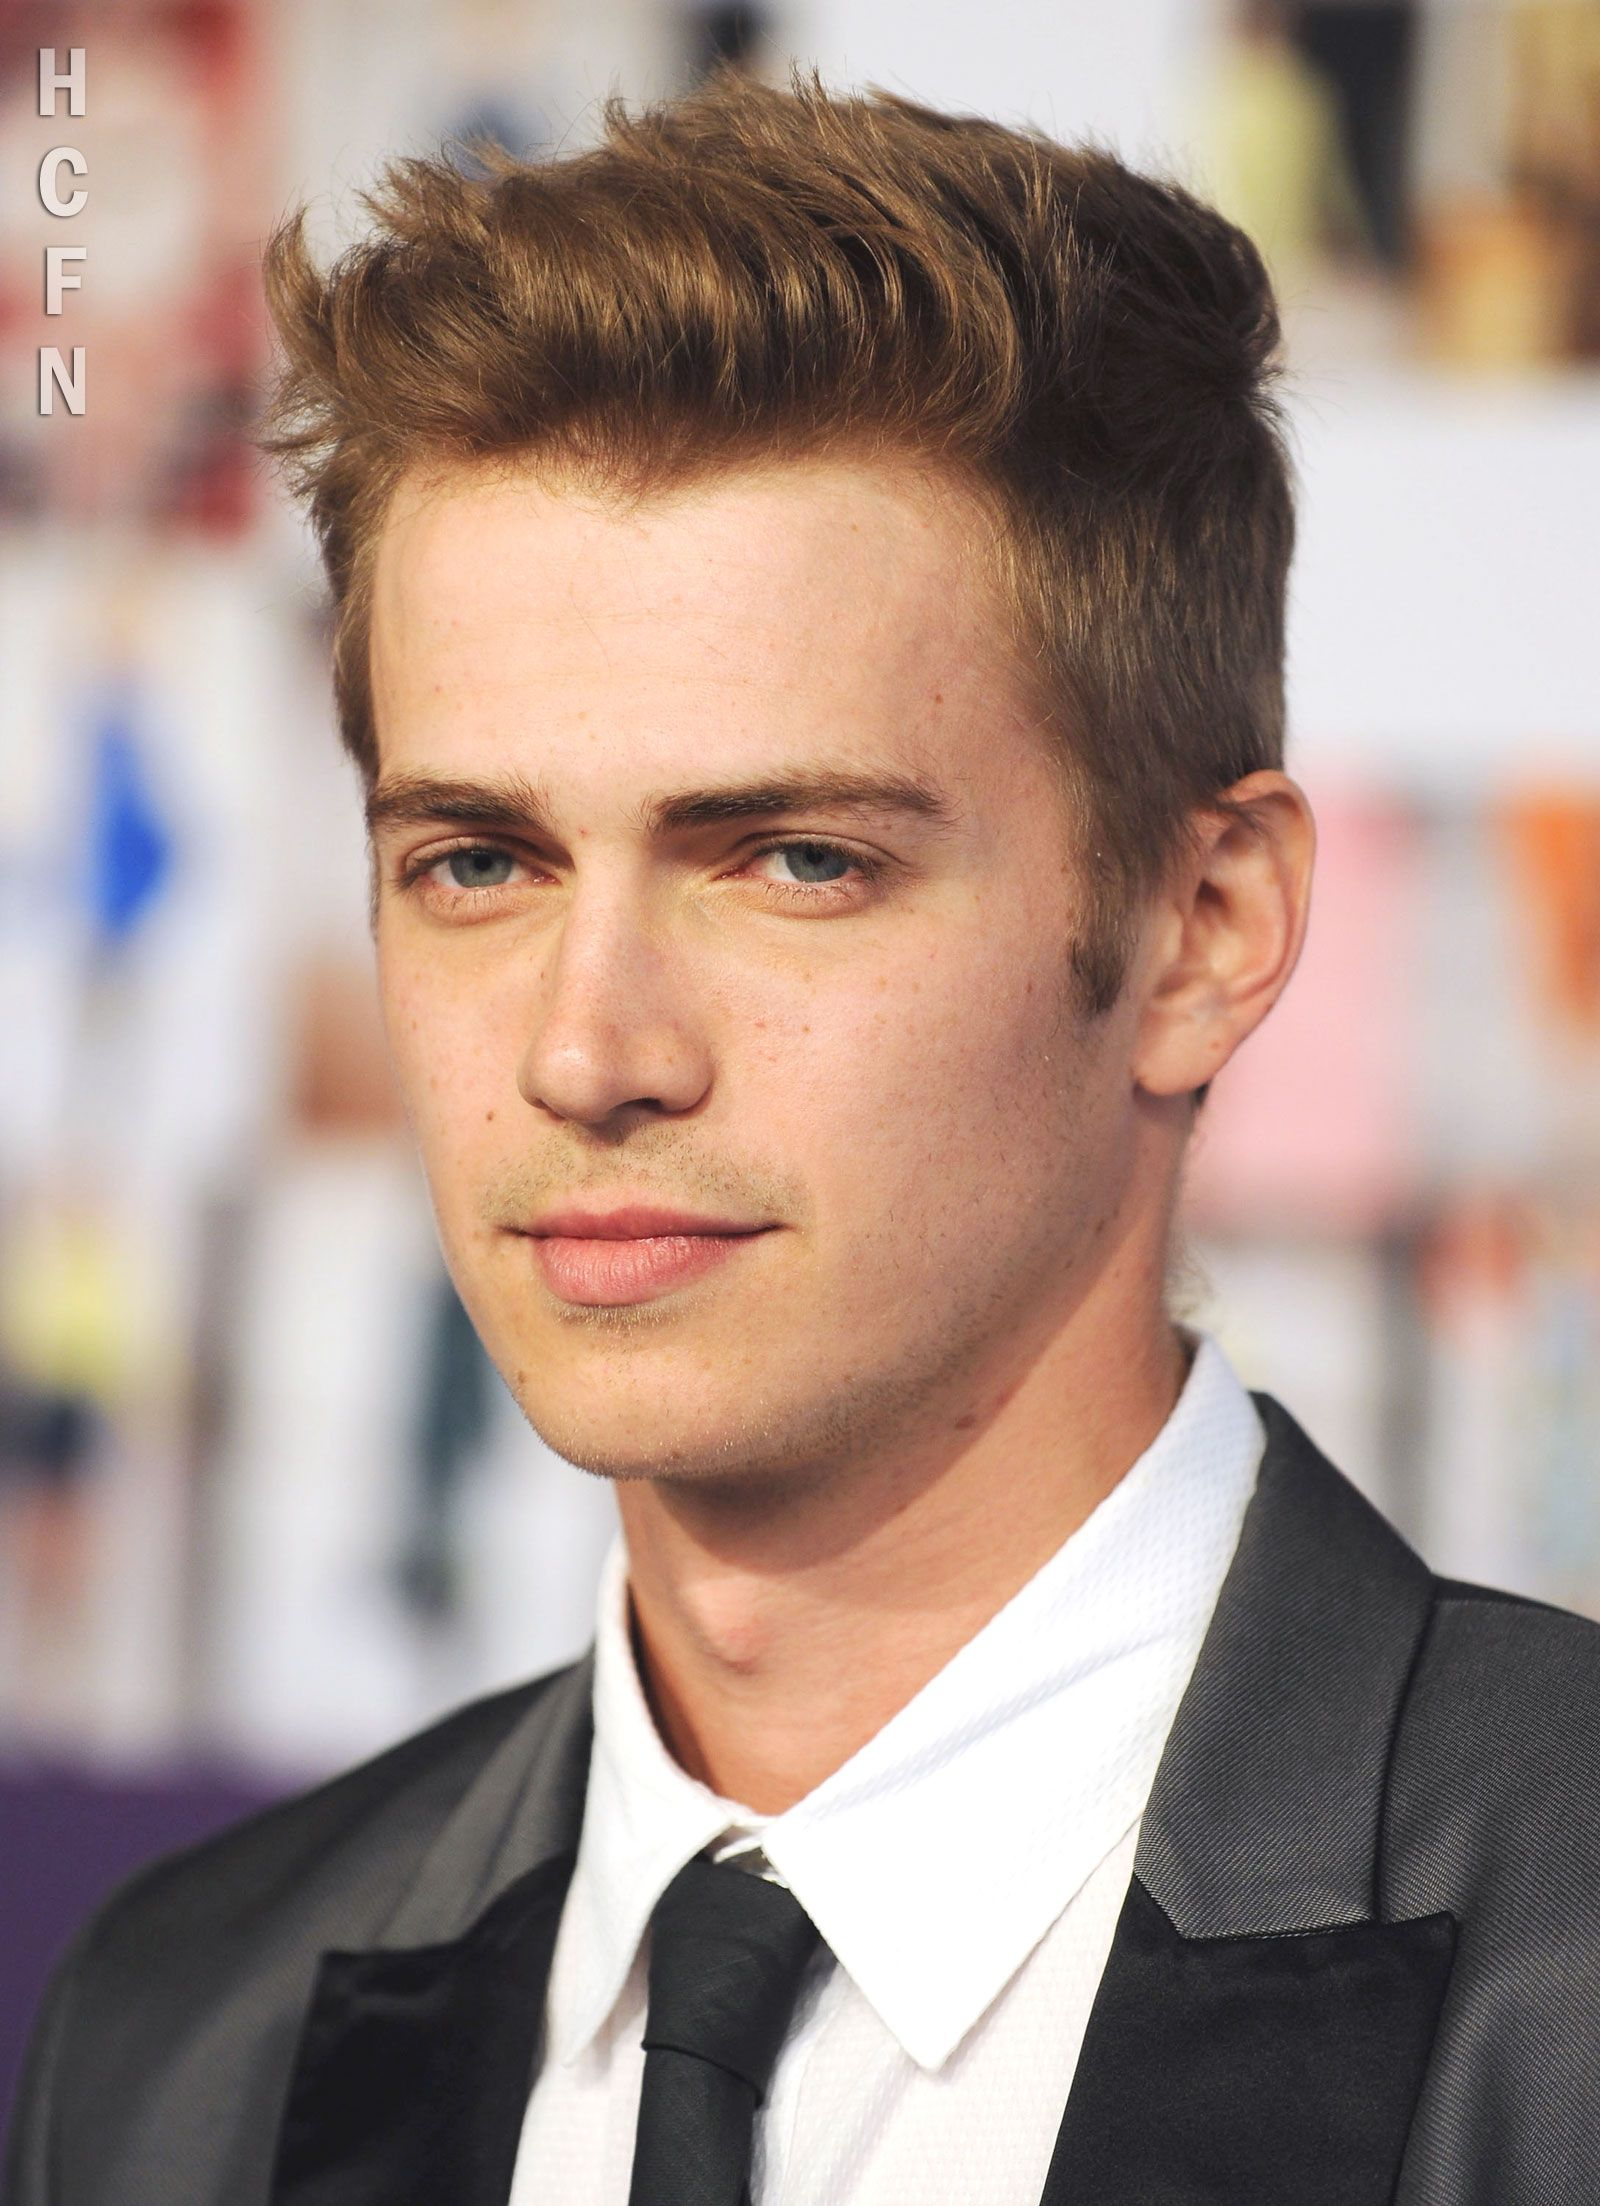 One of the most famous people on earth hayden christensen one of the most famous people on earth hayden christensen sciox Choice Image